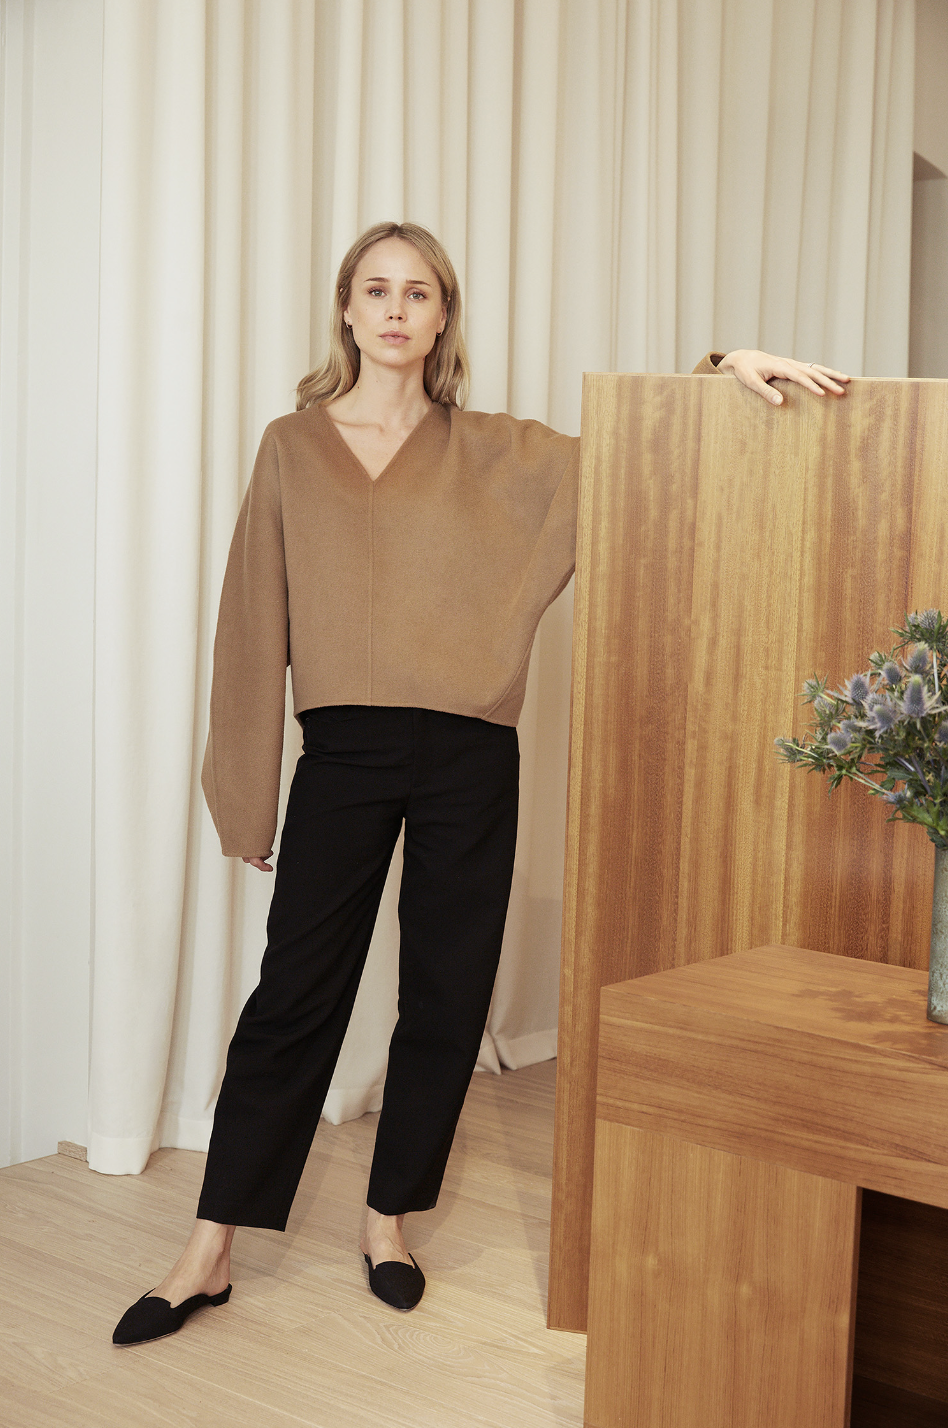 3-Piece Office Outfit for Spring — Elin Kling in a camel v-neck sweater, black pants, and black mule flats.